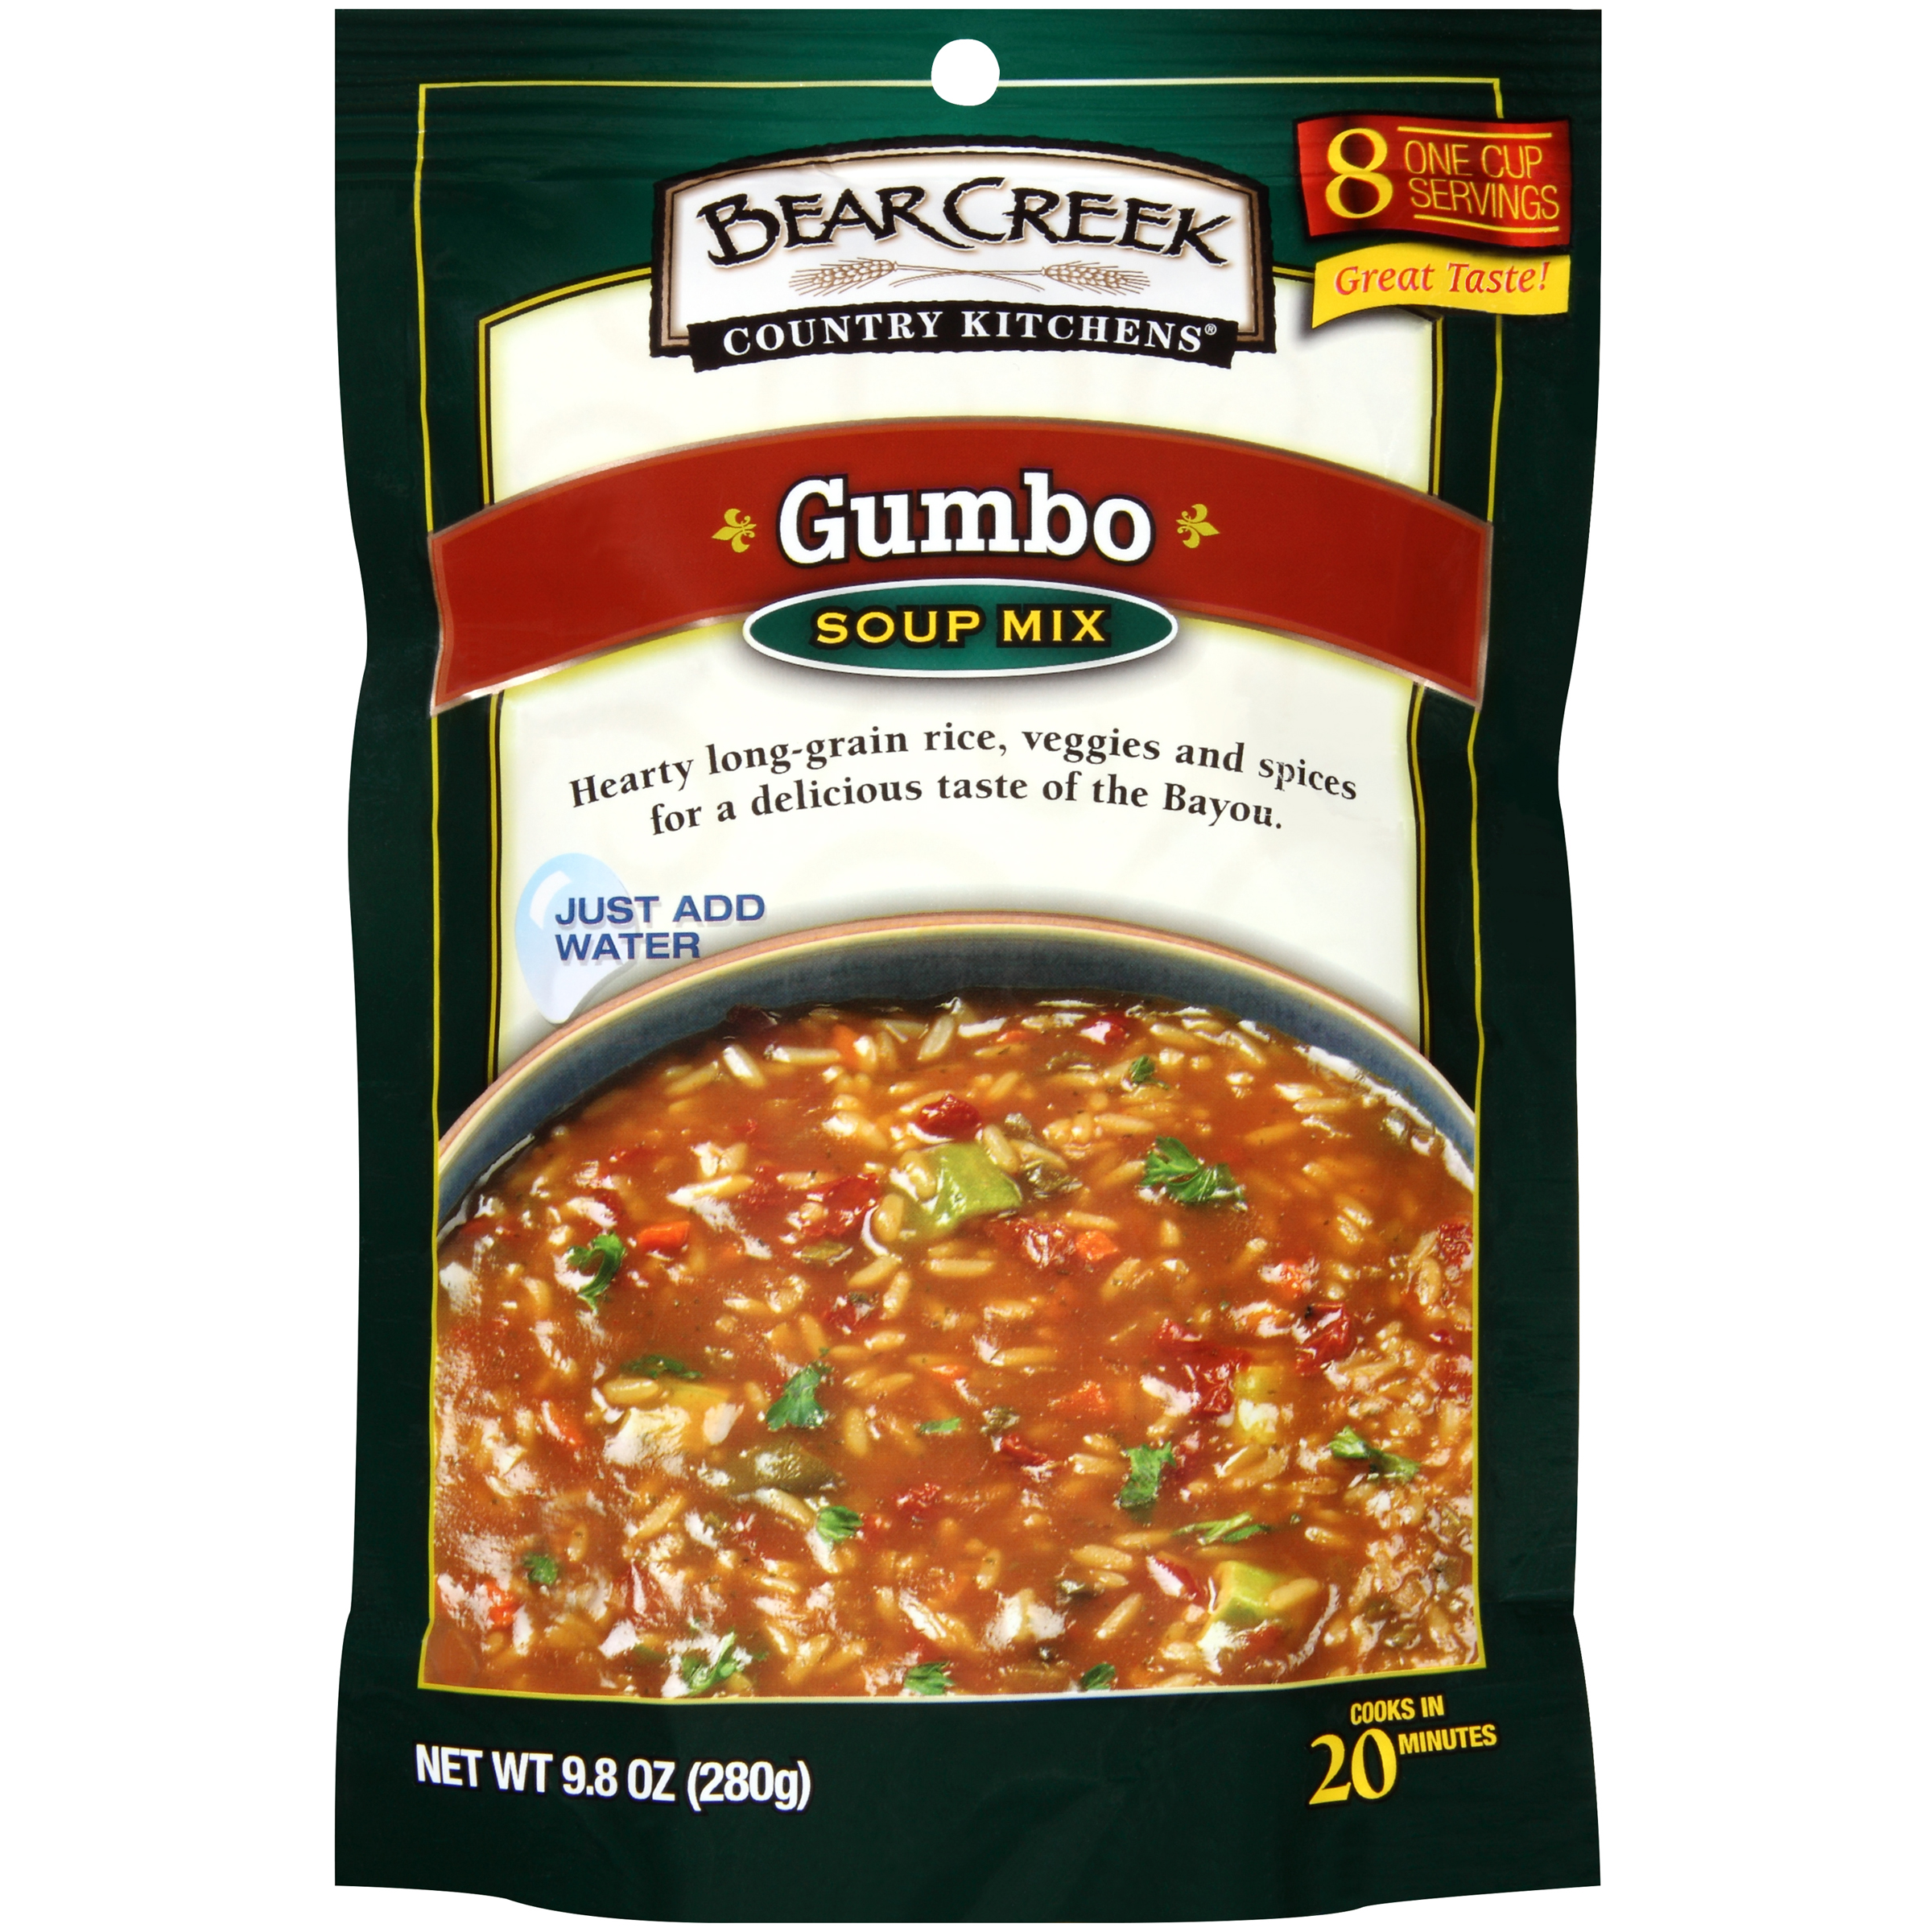 Bear Creek Country Kitchens: Gumbo Soup Mix, 9.80 oz by Bear Creek Country Kitchens